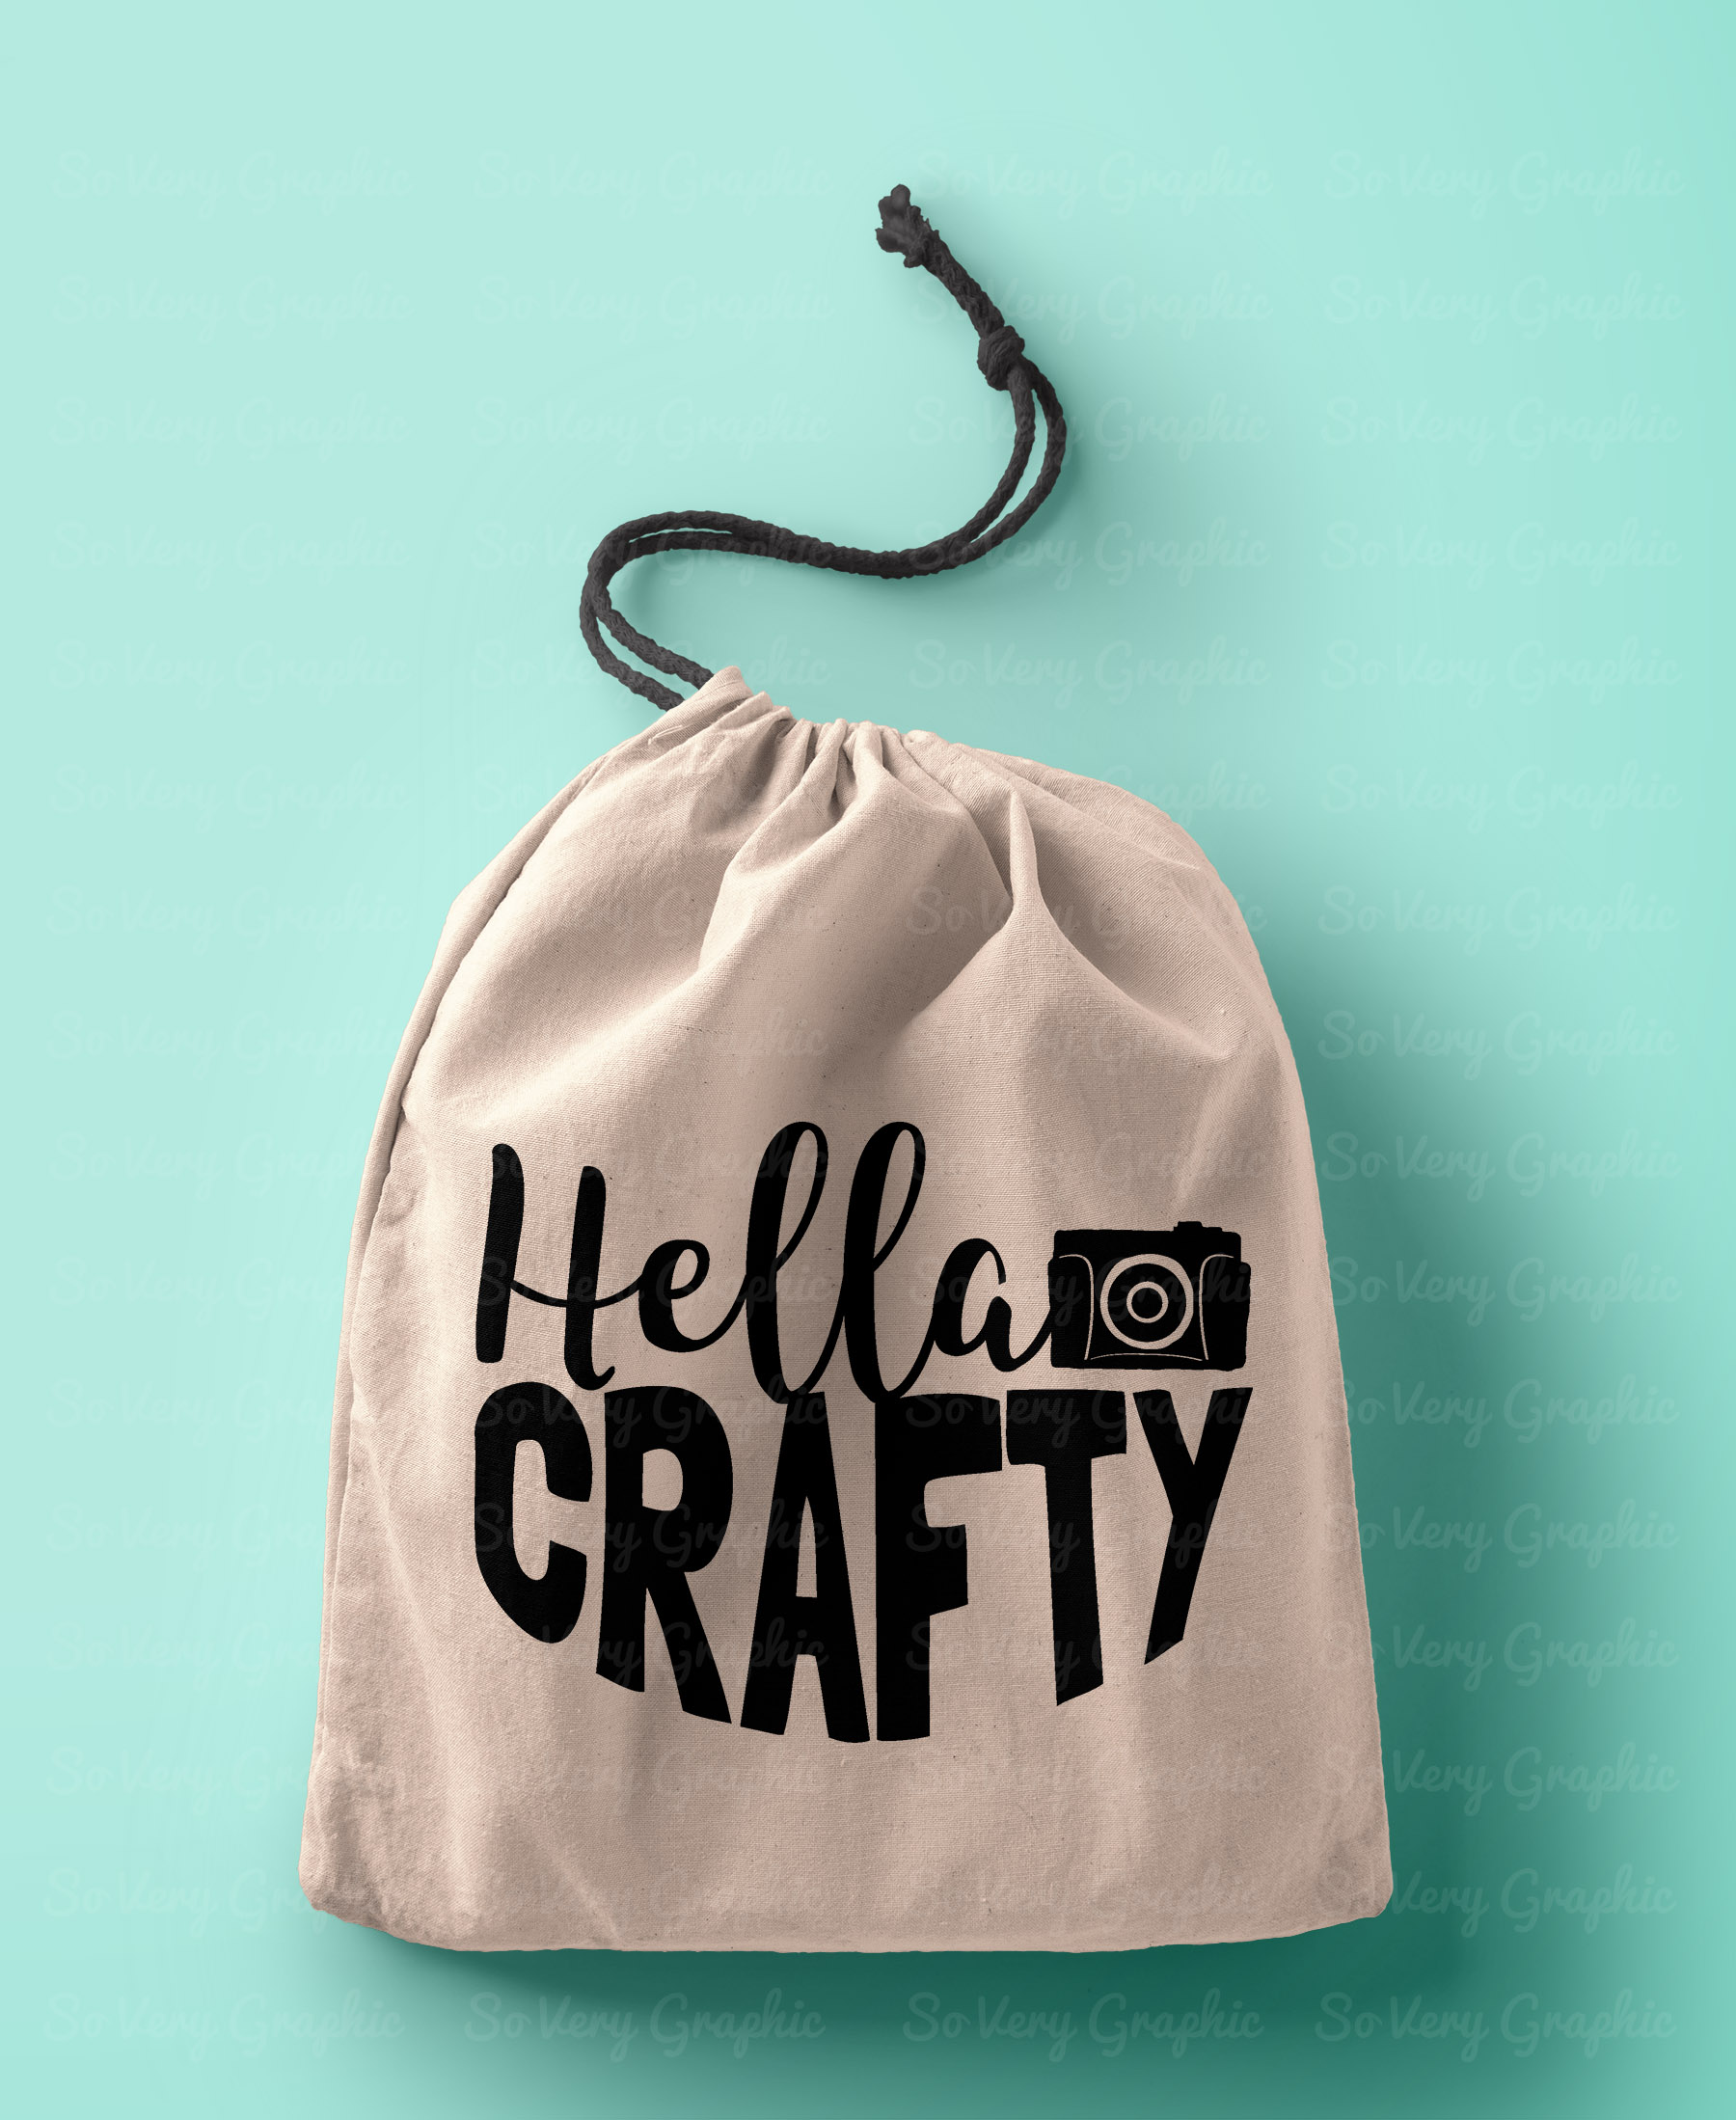 Hella Crafty   Cutting File & Printable   SVG   PNG   Camera example image 2